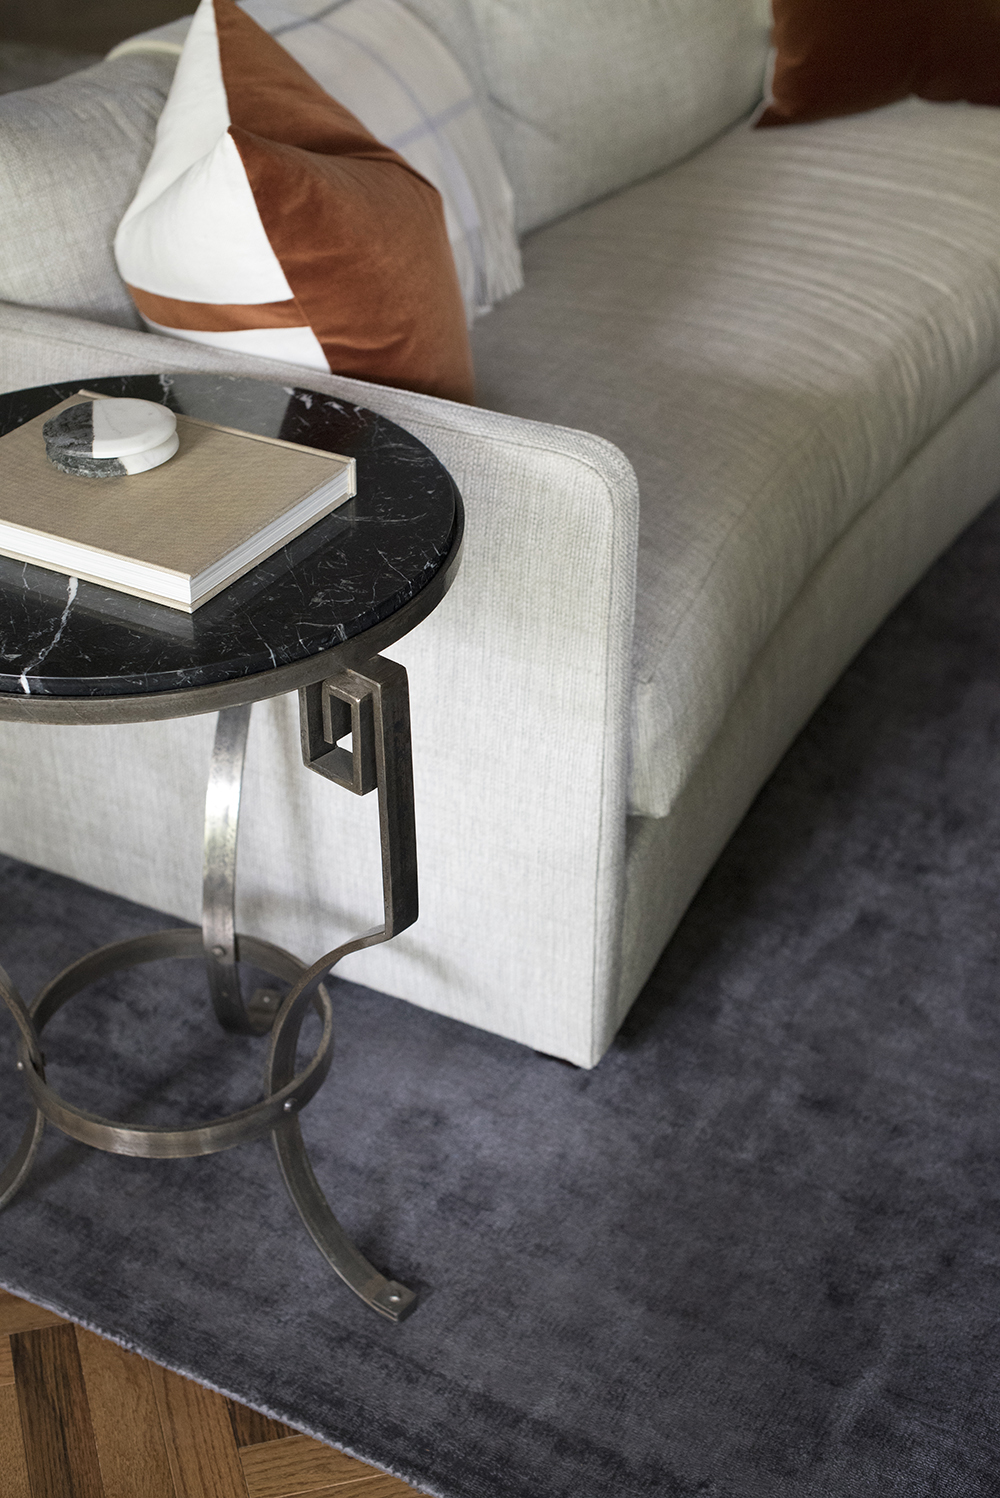 Labor Day Sales & Home Finds - roomfortuesday.com